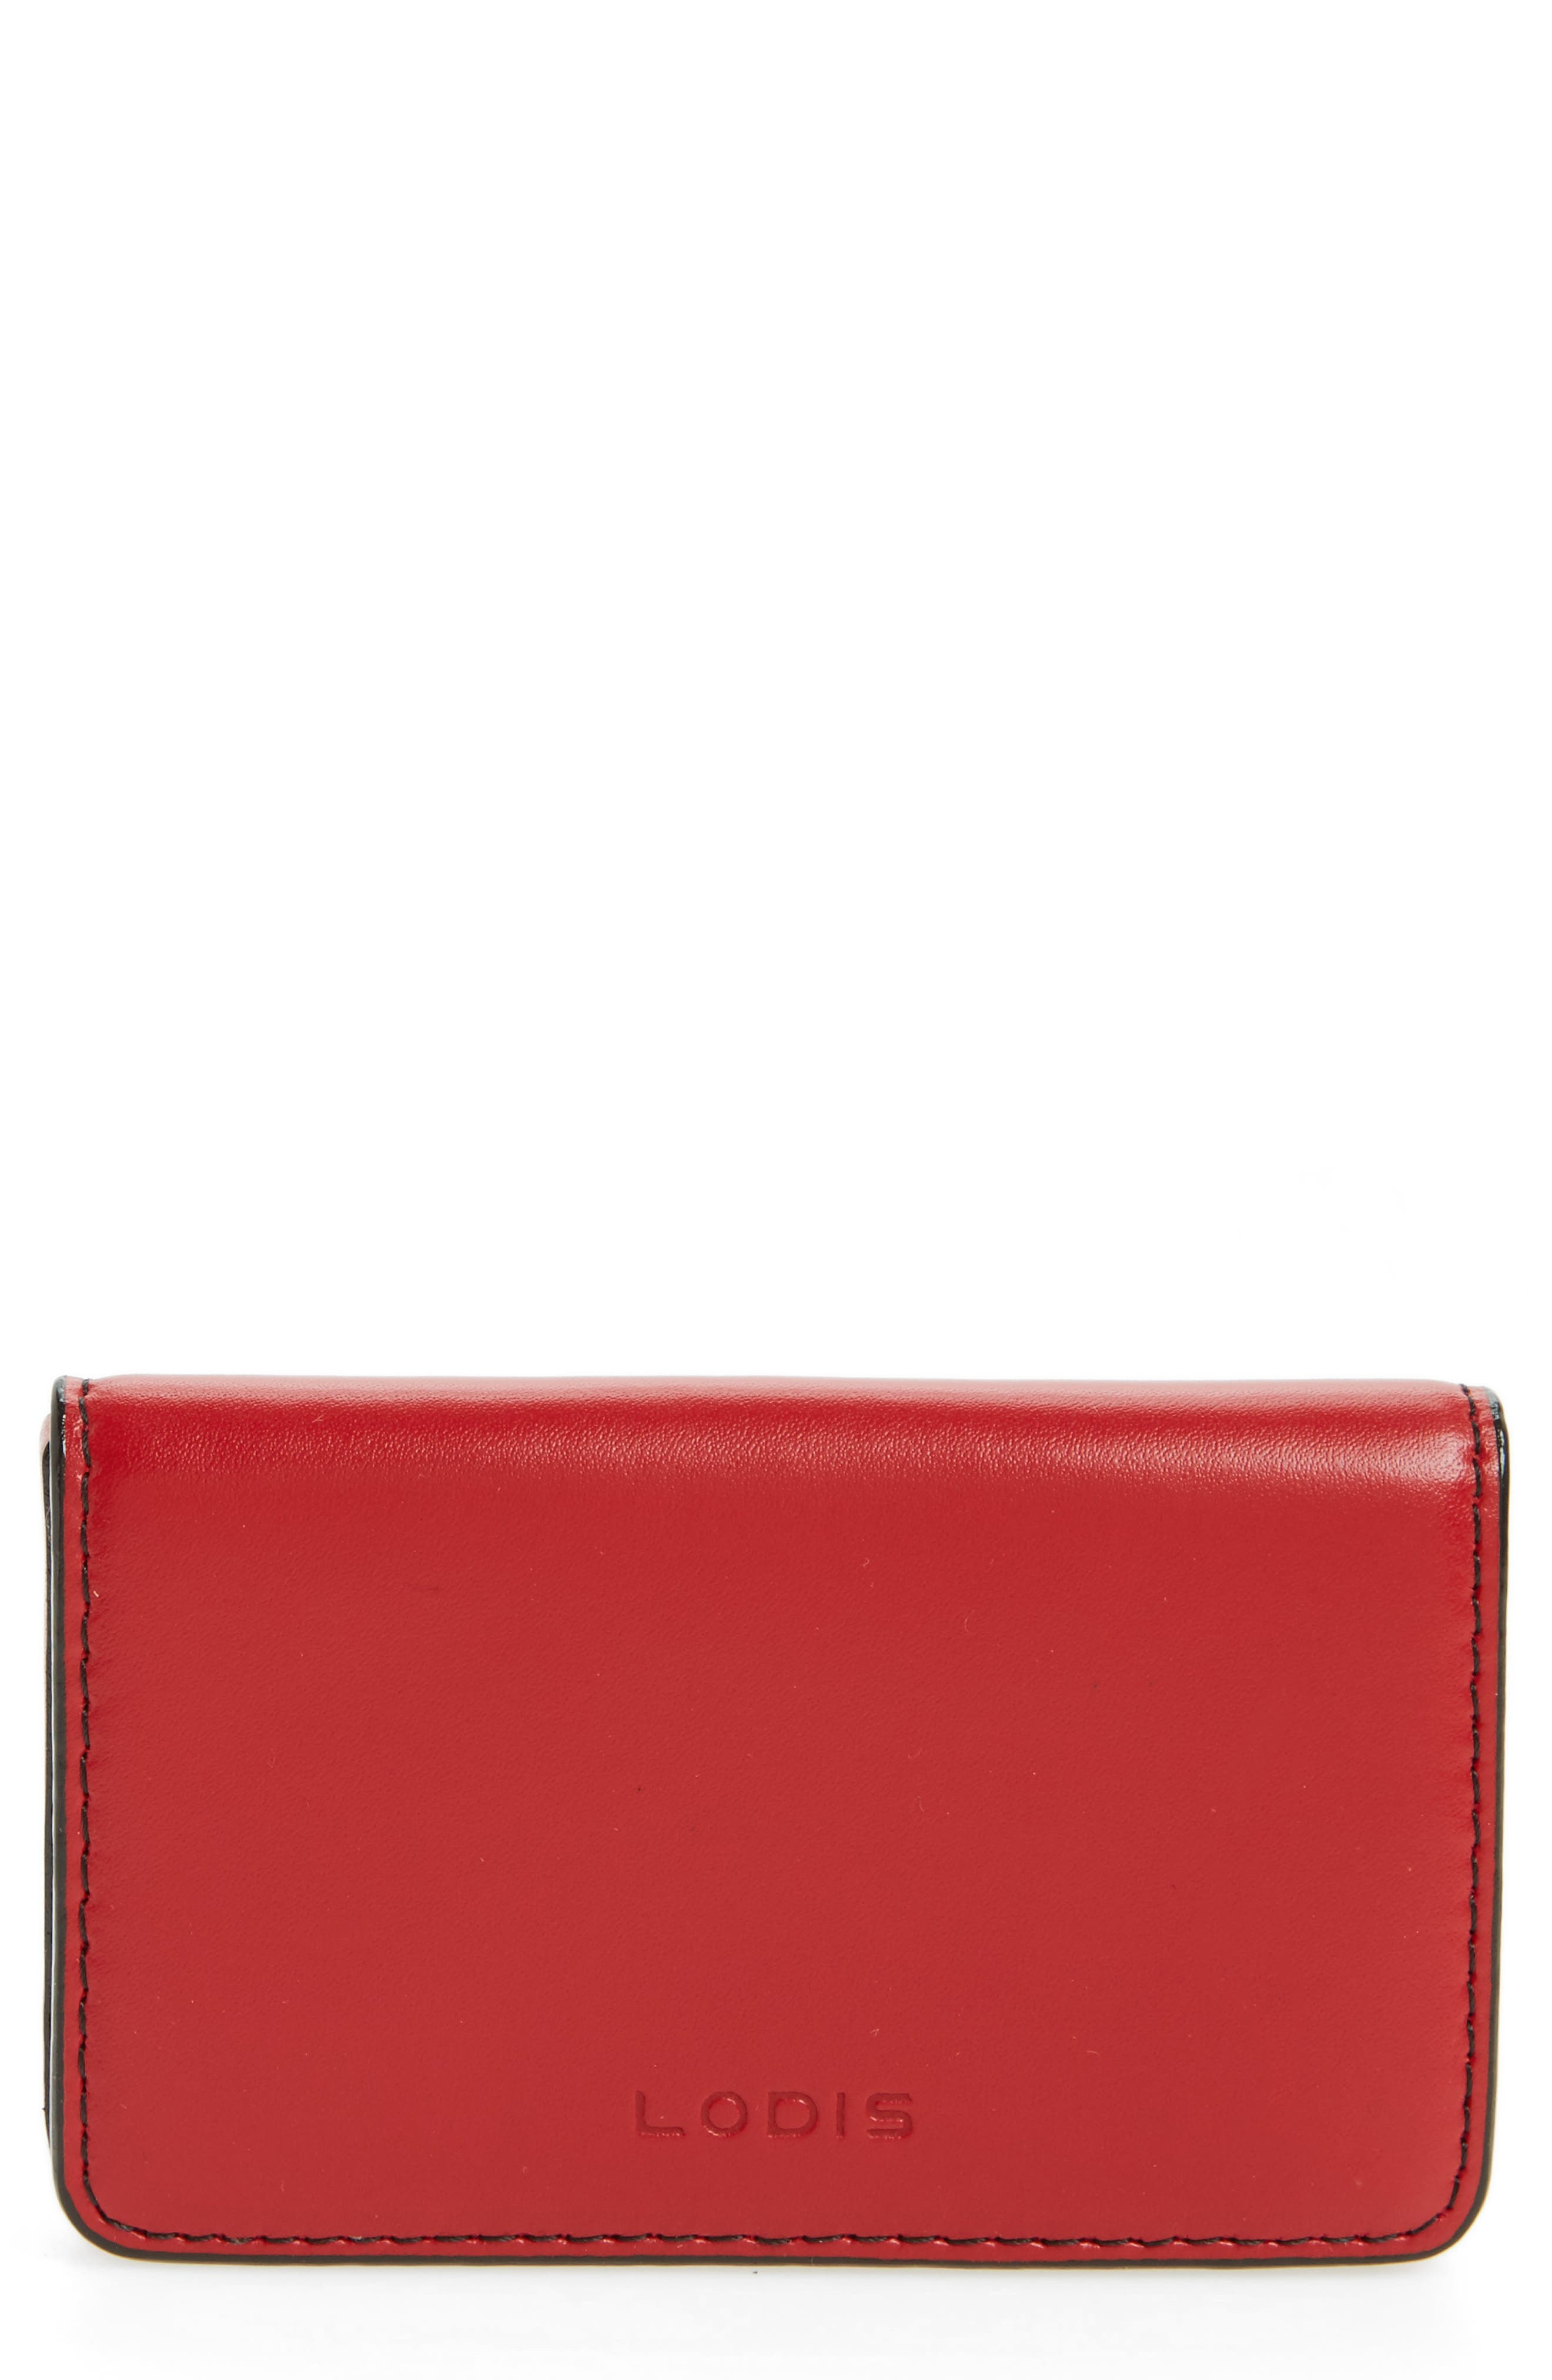 Lodis Audrey Under Lock & Key Leather Mini Card Case